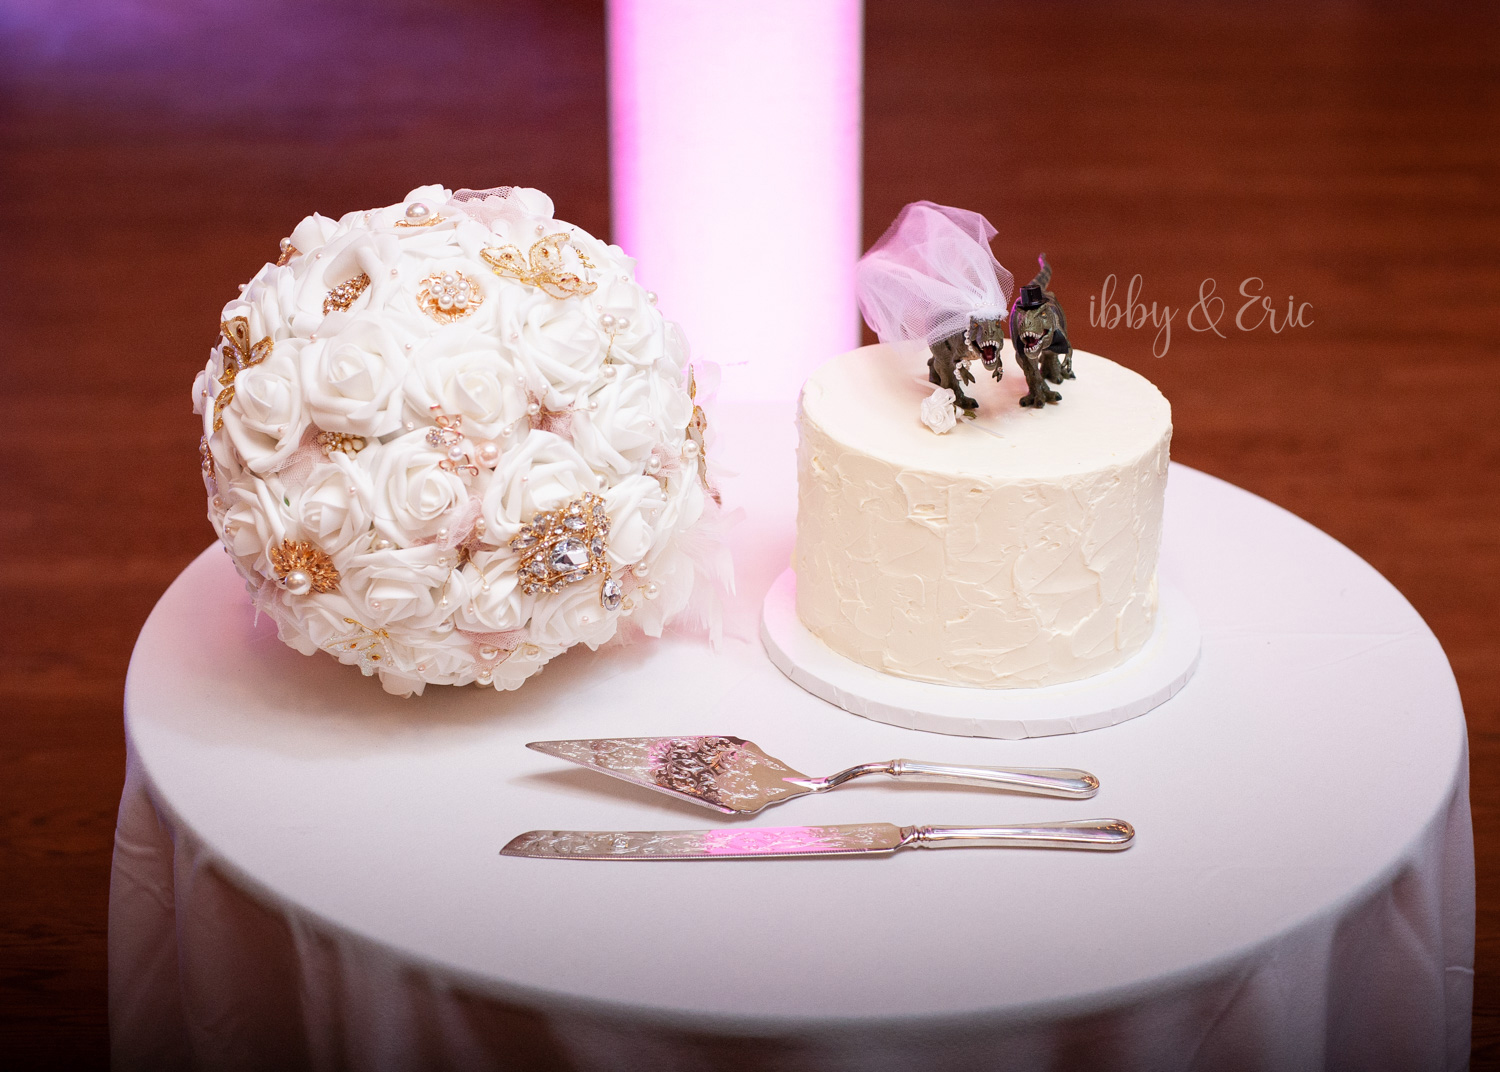 Dessert table arrangement, wedding cake with dinosaur toppers, brooch bouquet, and decorative cake servers.